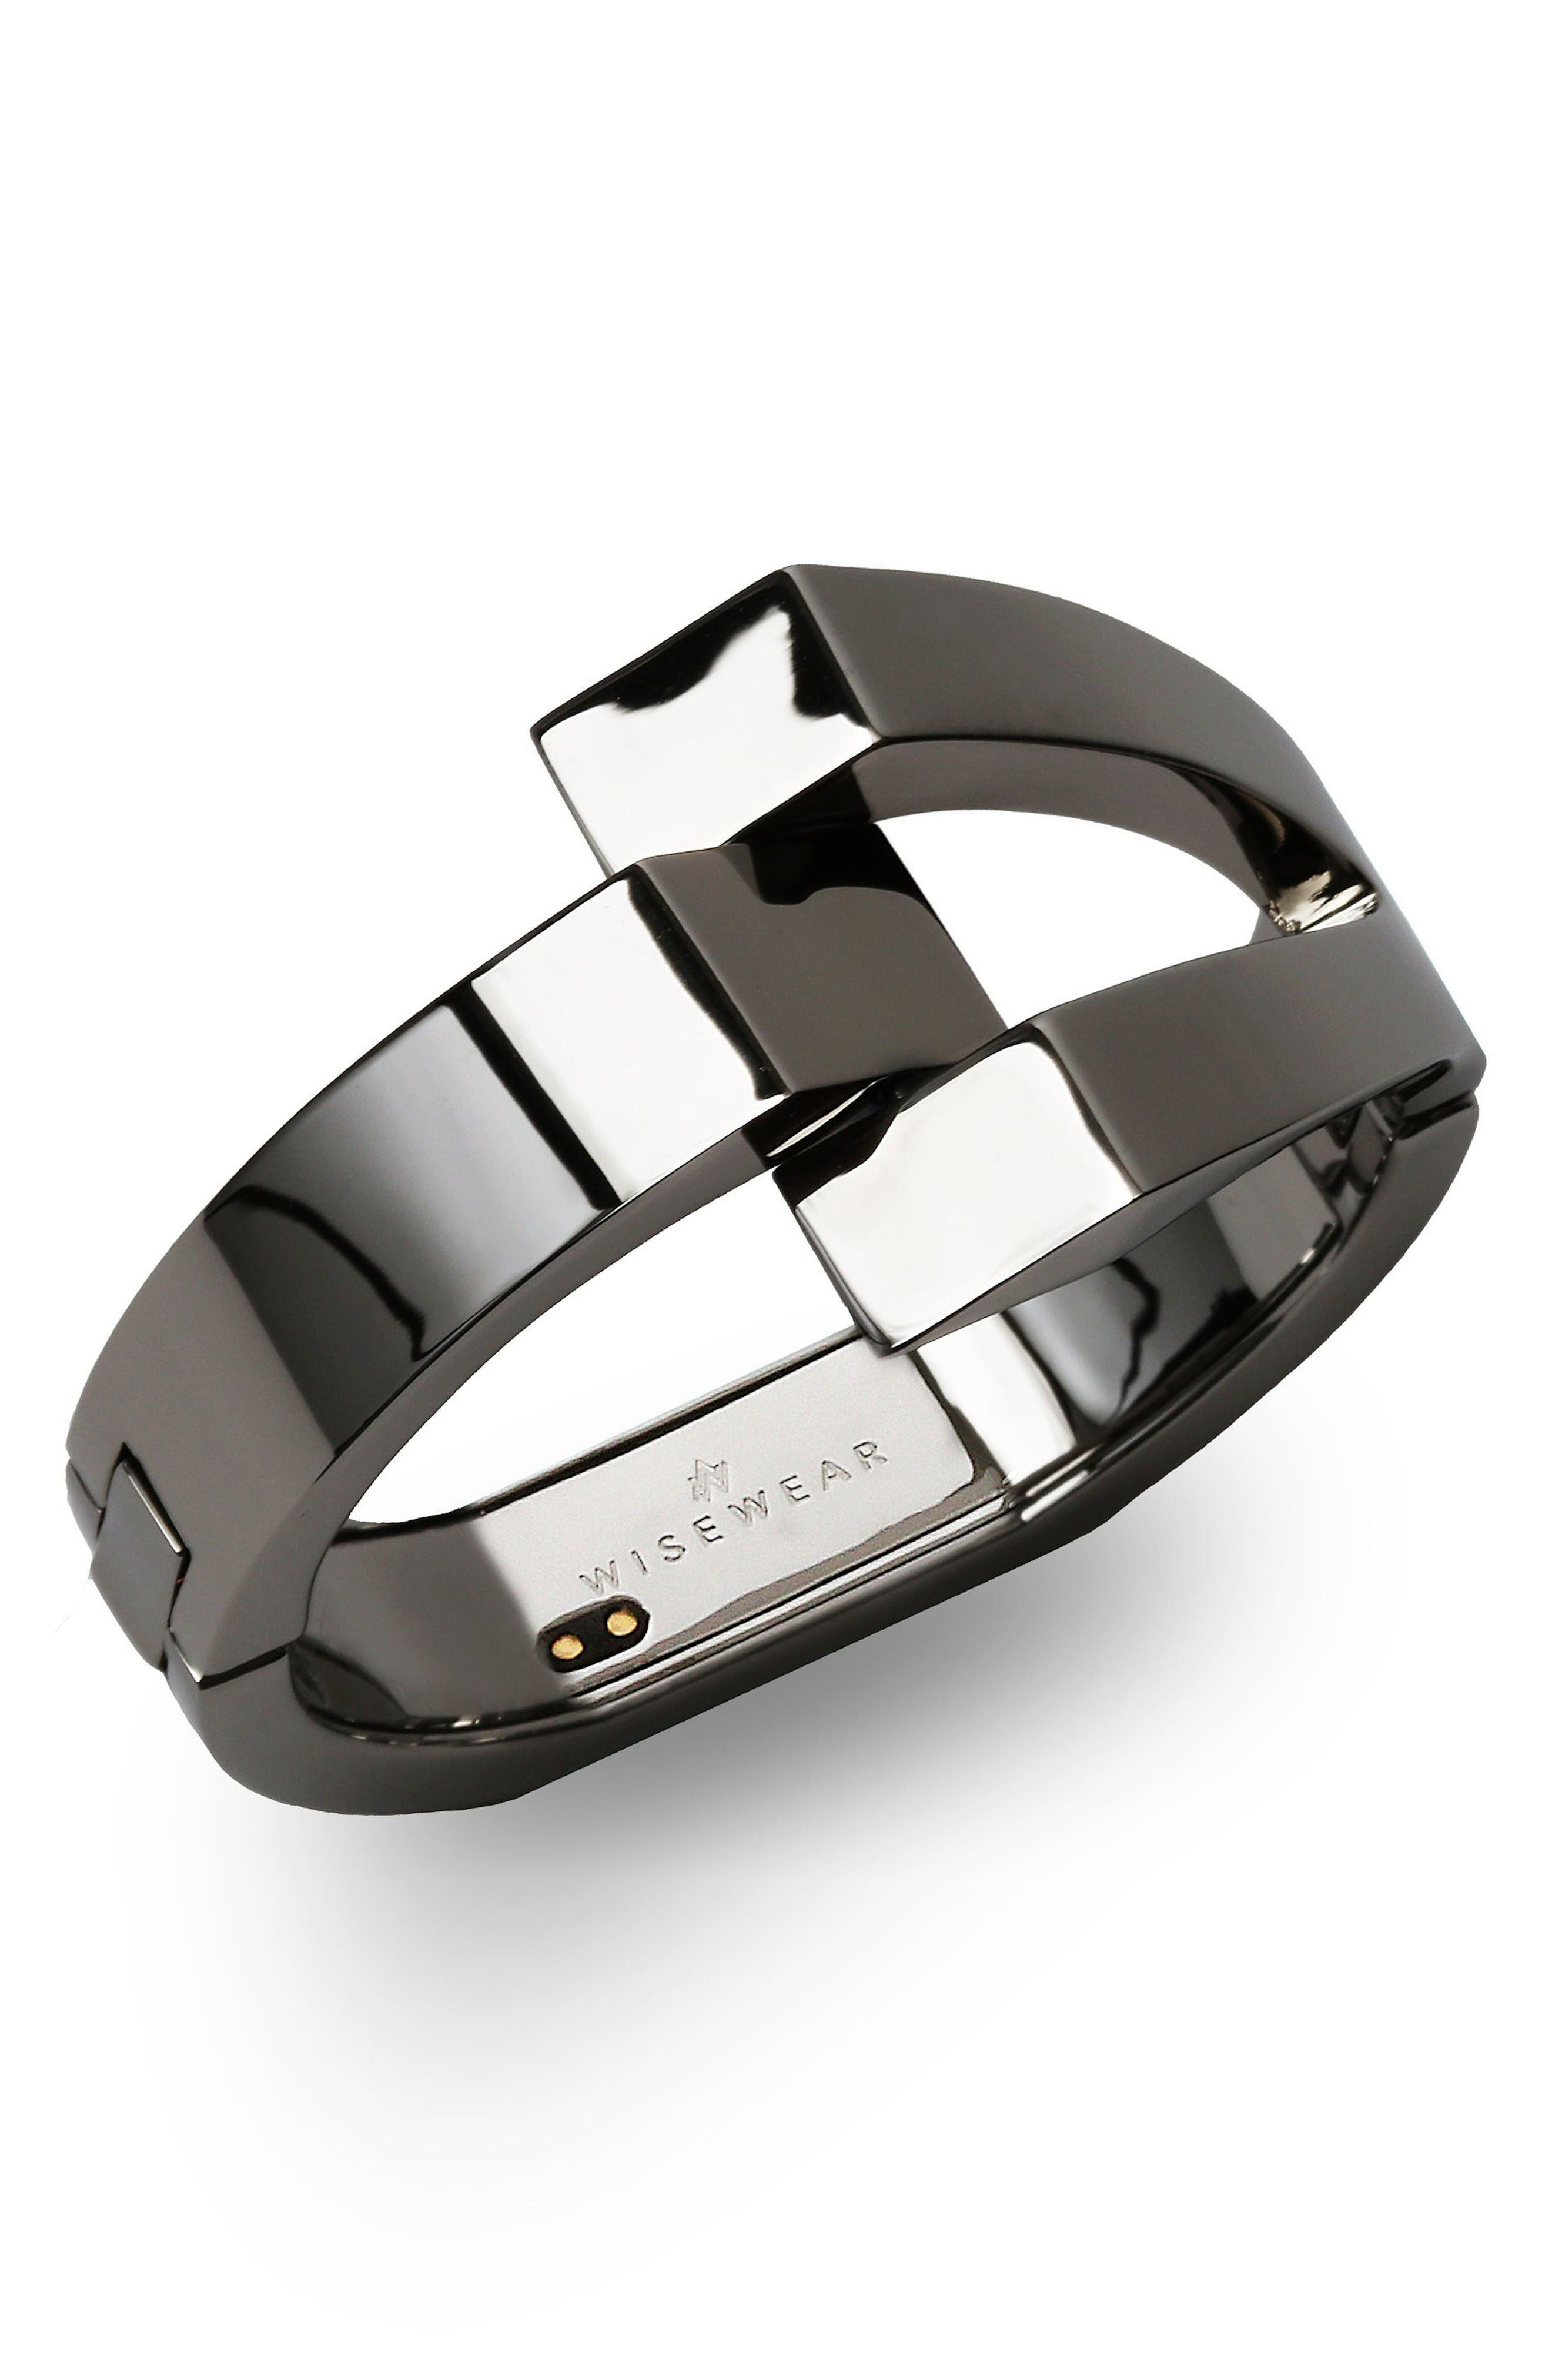 WISEWEAR Calder Activity Tracker Bangle